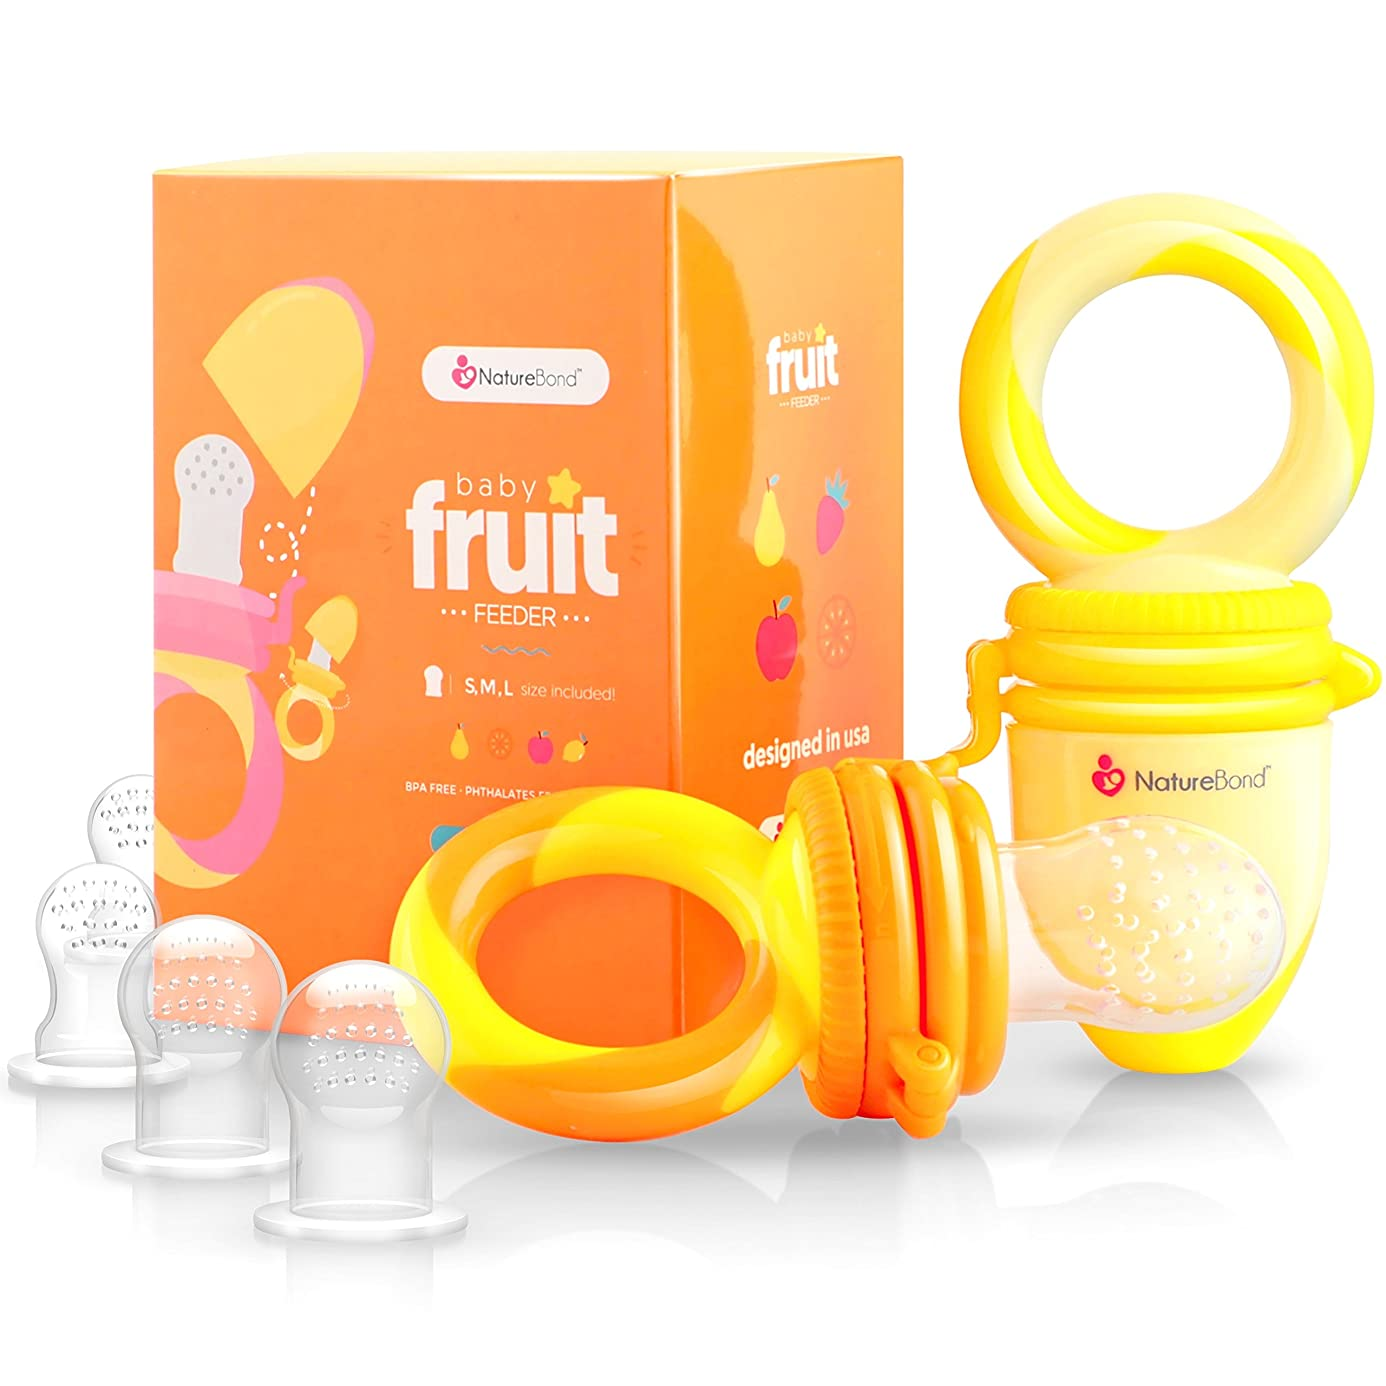 NatureBond Baby Food Feeder/Fruit Feeder Pacifier (2 Pack) - Infant Teething Toy Teether in Appetite Stimulating Colors | Bonus Includes All Sizes Silicone Sacs (Sunshine Orange and Lemonade Yellow)